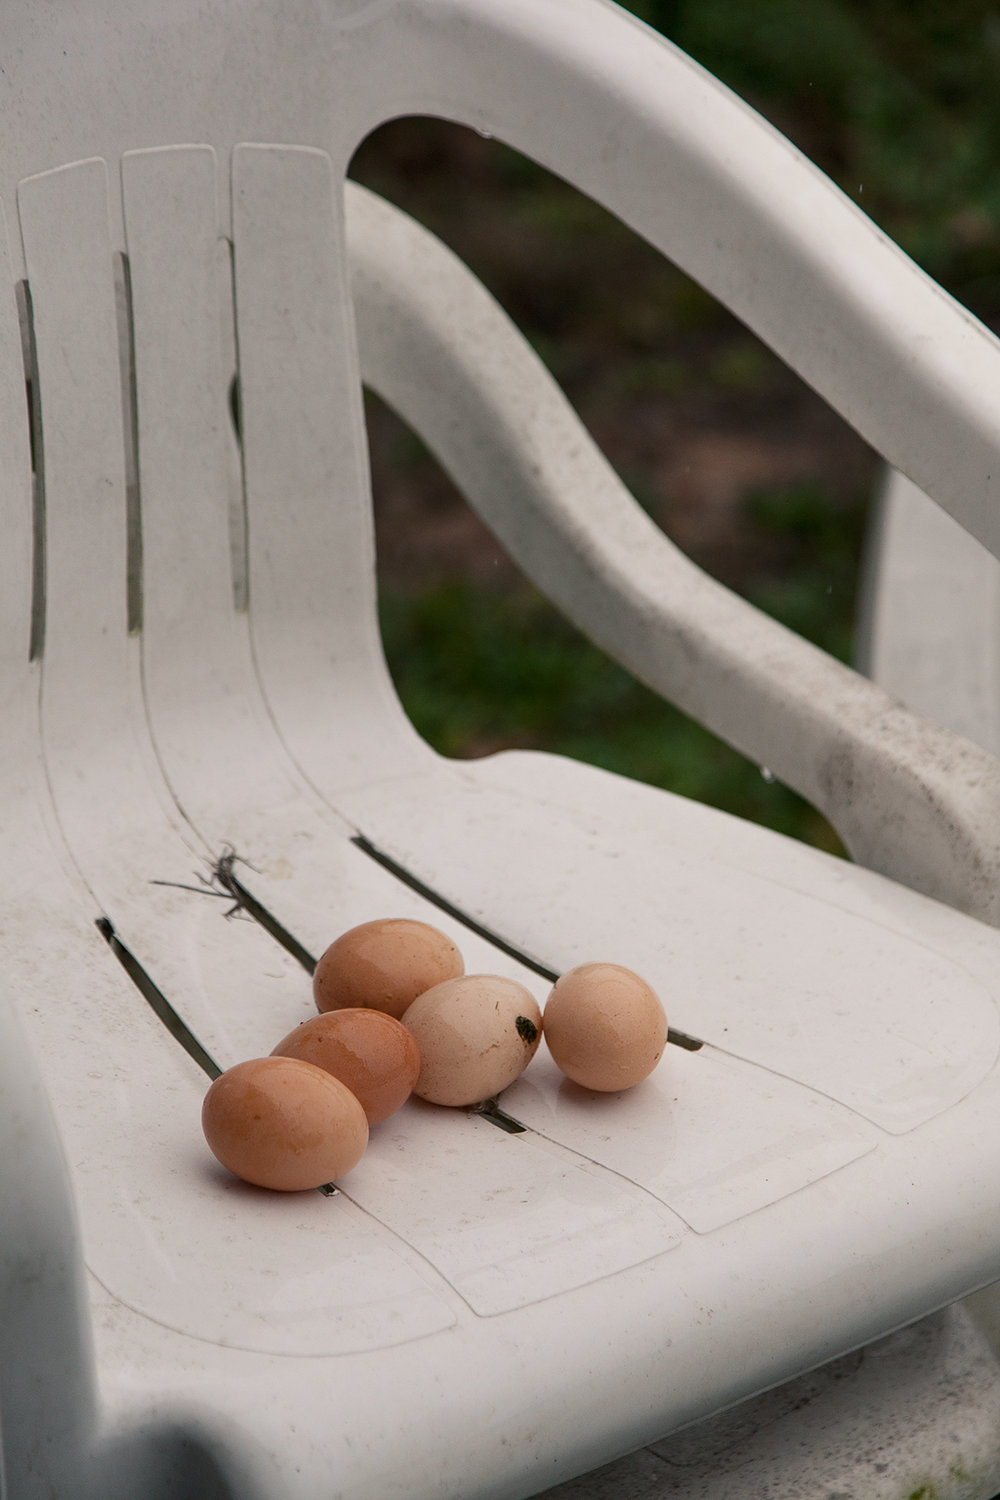 Possum_Tail_Farm_eggs_in_chair_1381.jpg